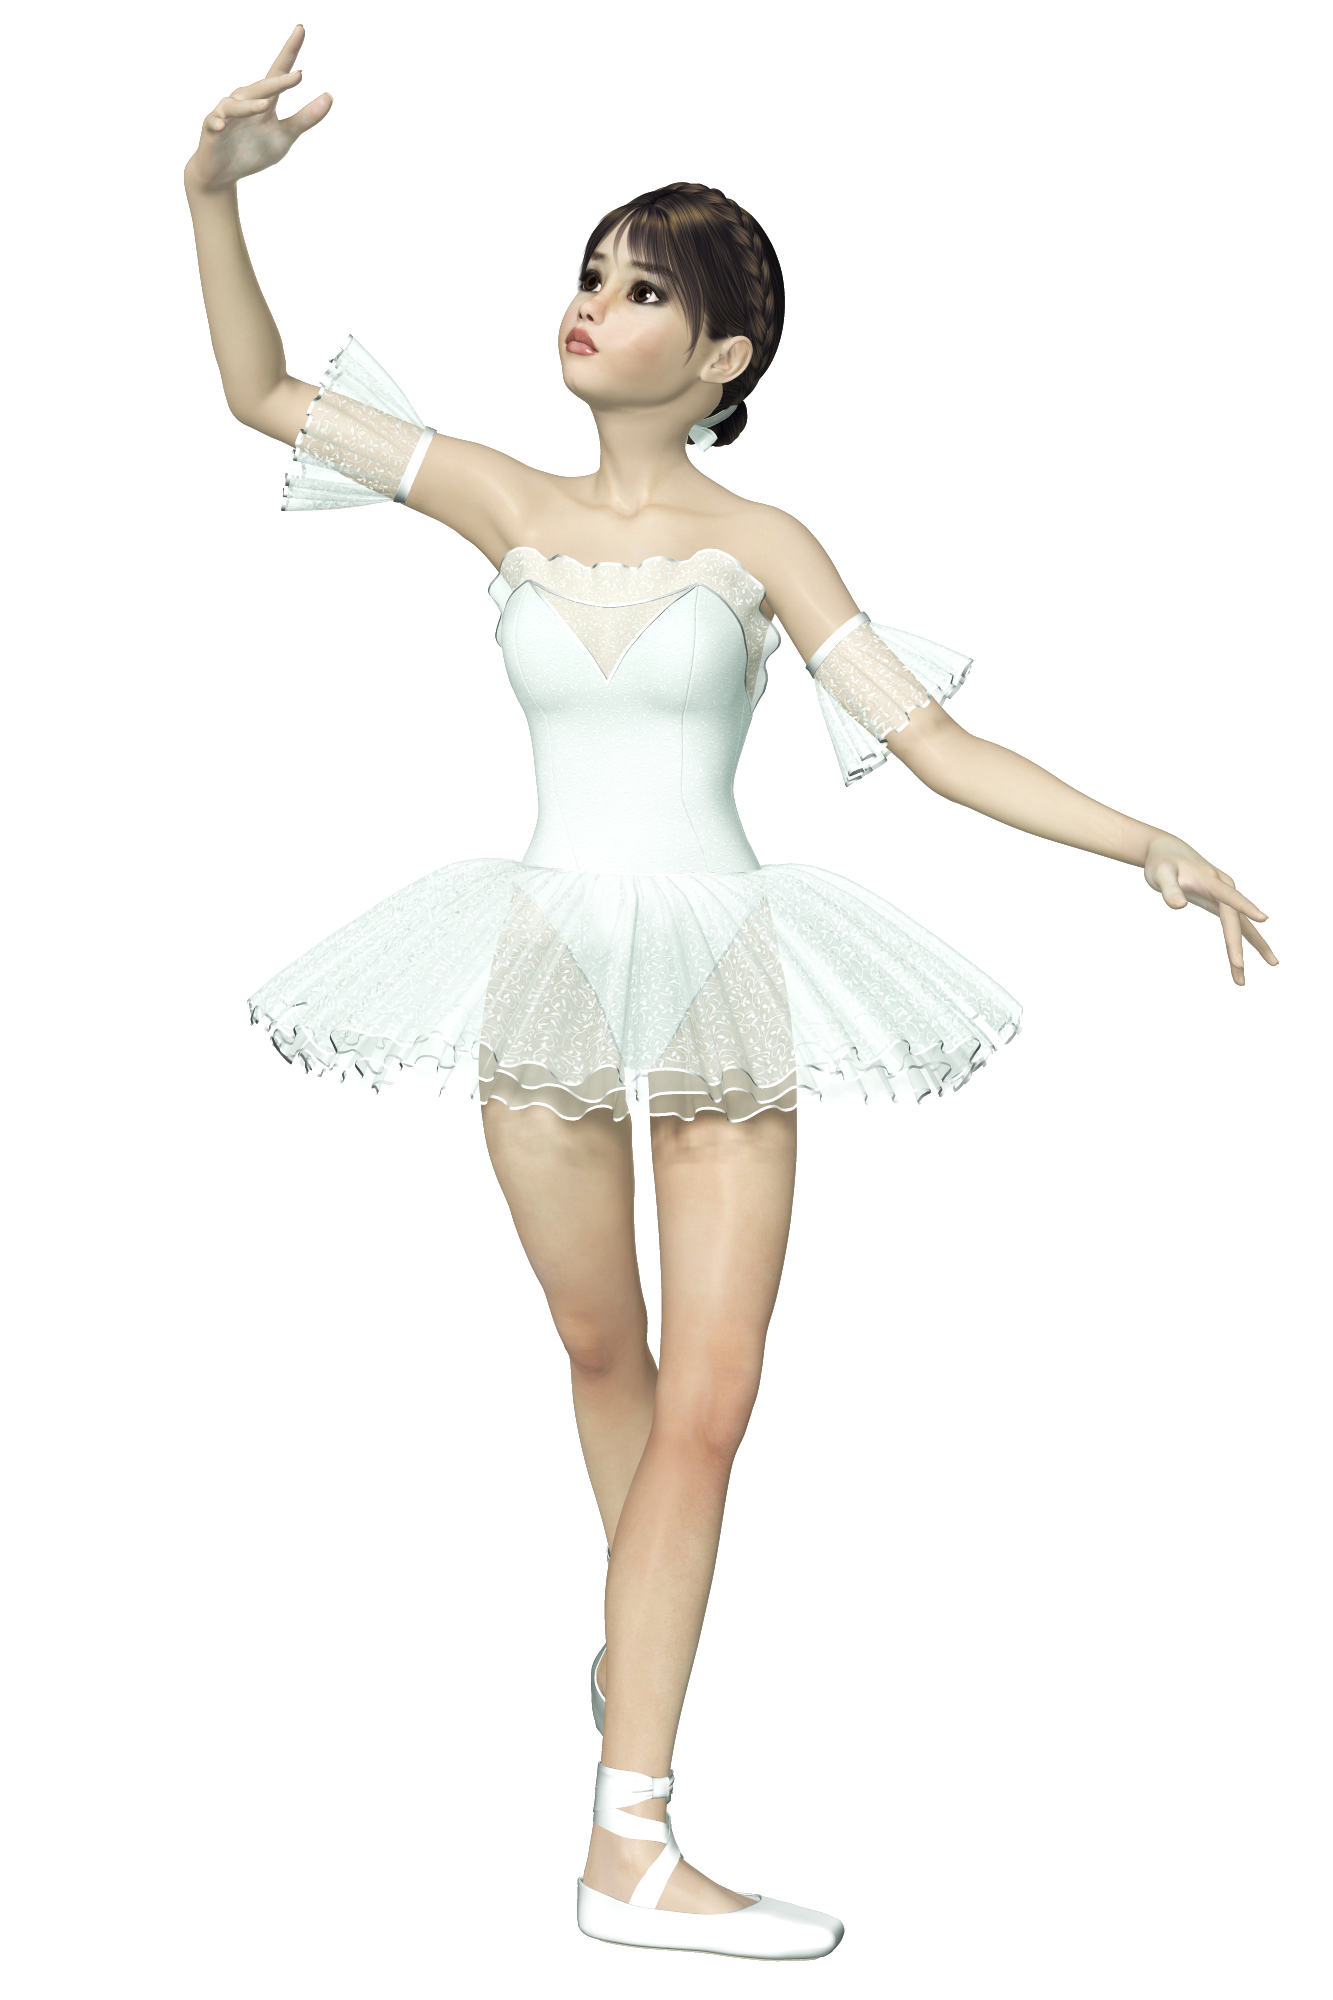 Ballet Pack 1 Preview 2 by joannastar-stock